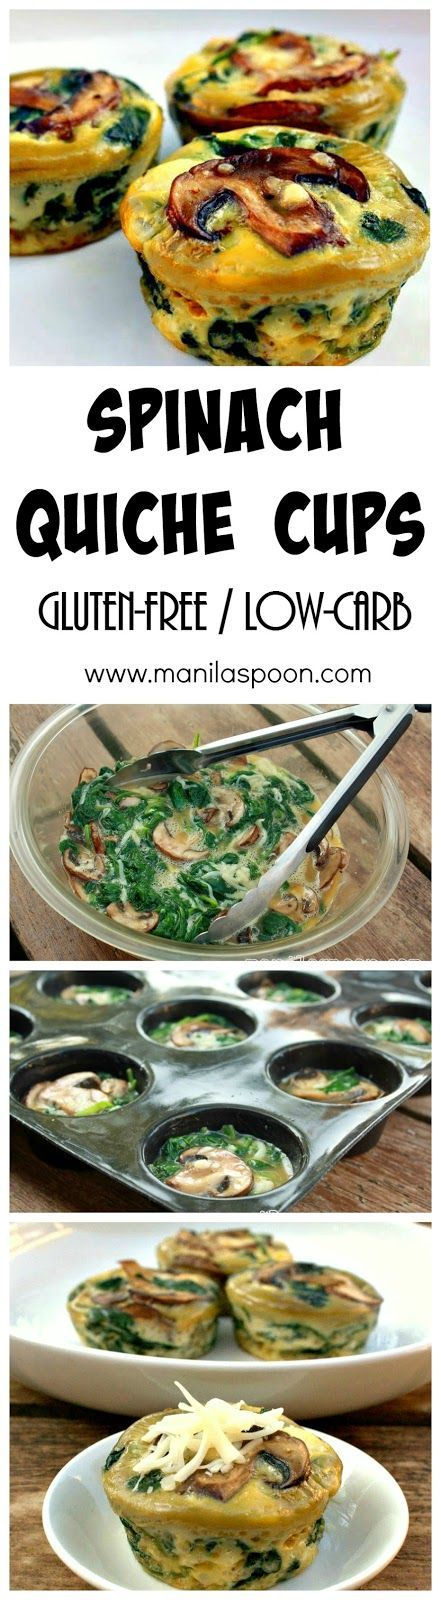 Completely gluten-free and low-carb is this healthy and delicious SPINACH QUICHE CUPS that everyone will enjoy. You can tweak the recipe to add your favorite vegetables! | manilaspoon.com